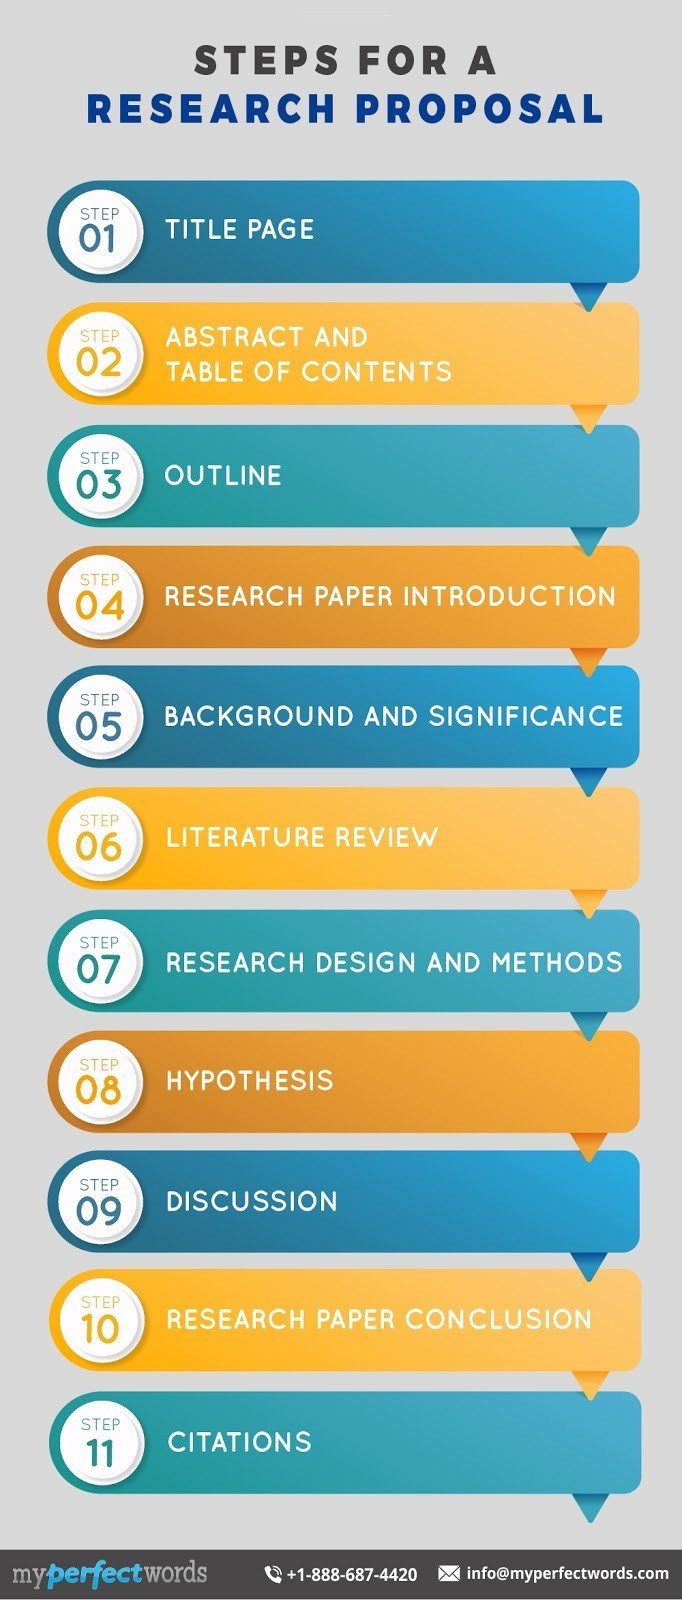 steps for a research proposal